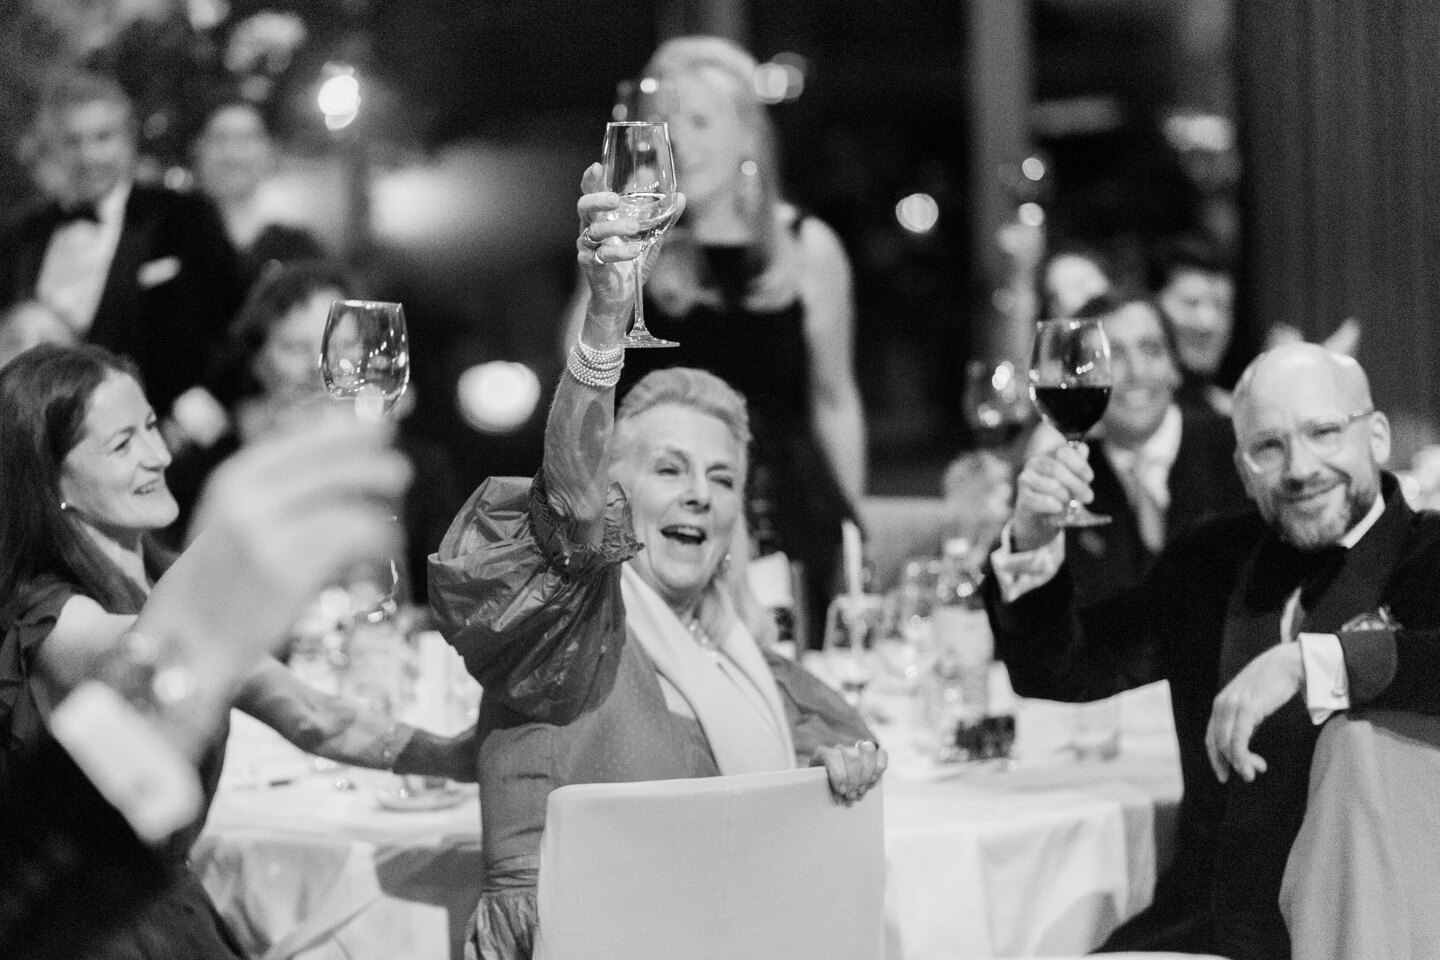 Services of Wedding Photographer in Italy: Cheerful, smiling guests raise their glasses up for the bride and groom